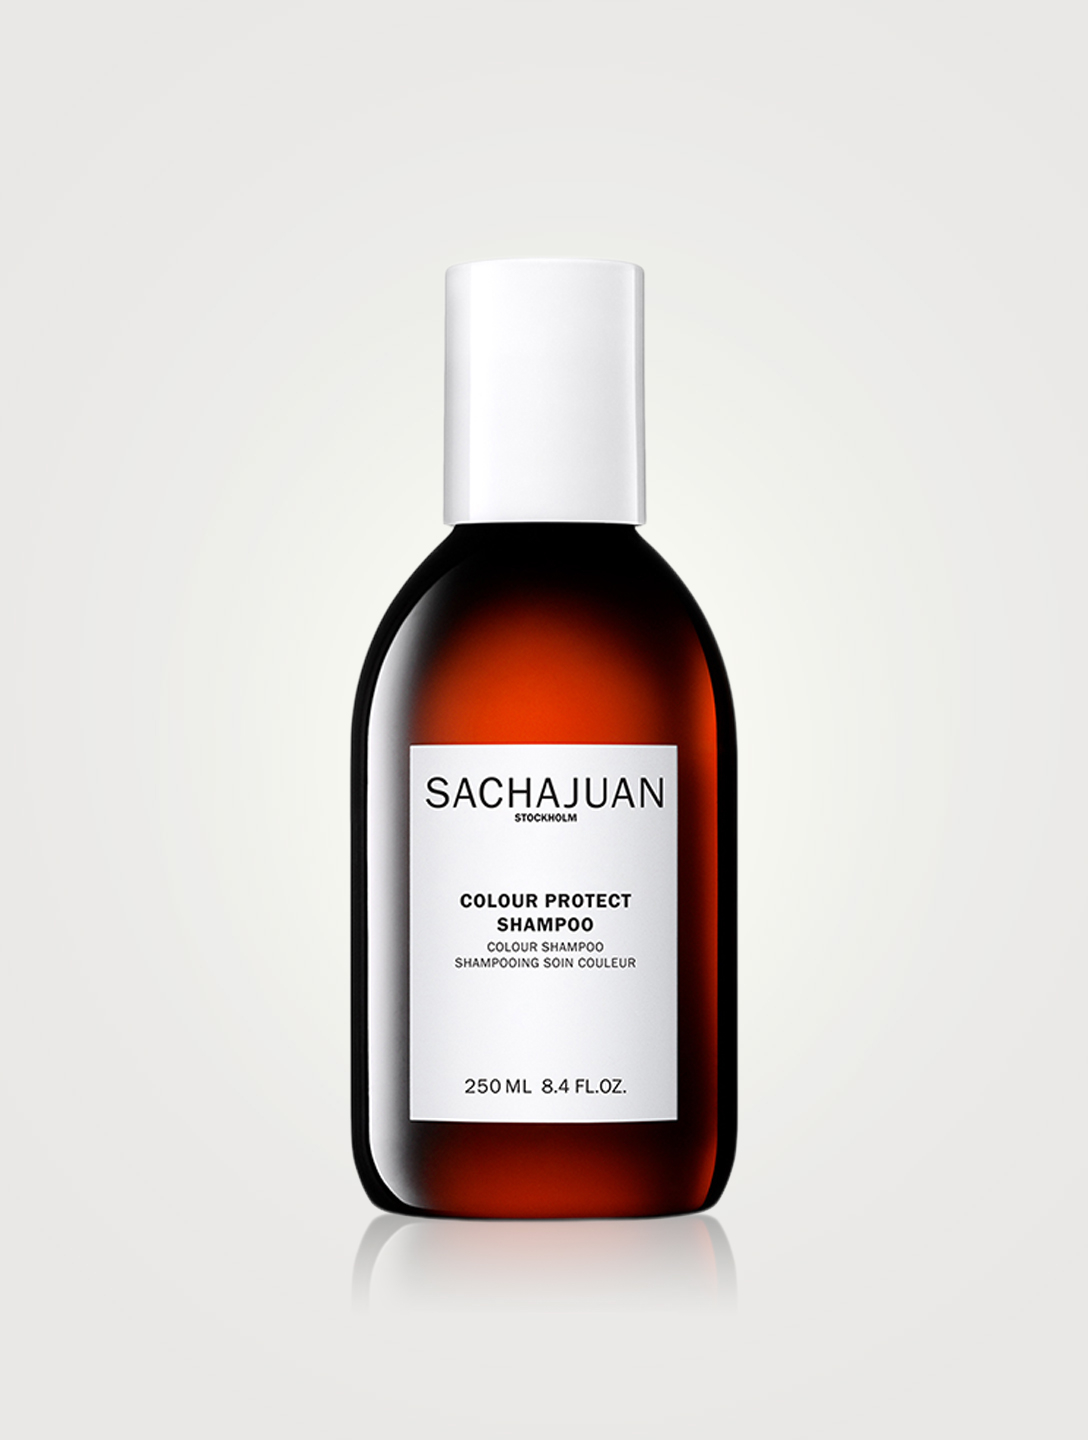 SACHAJUAN Colour Protect Shampoo Beauty